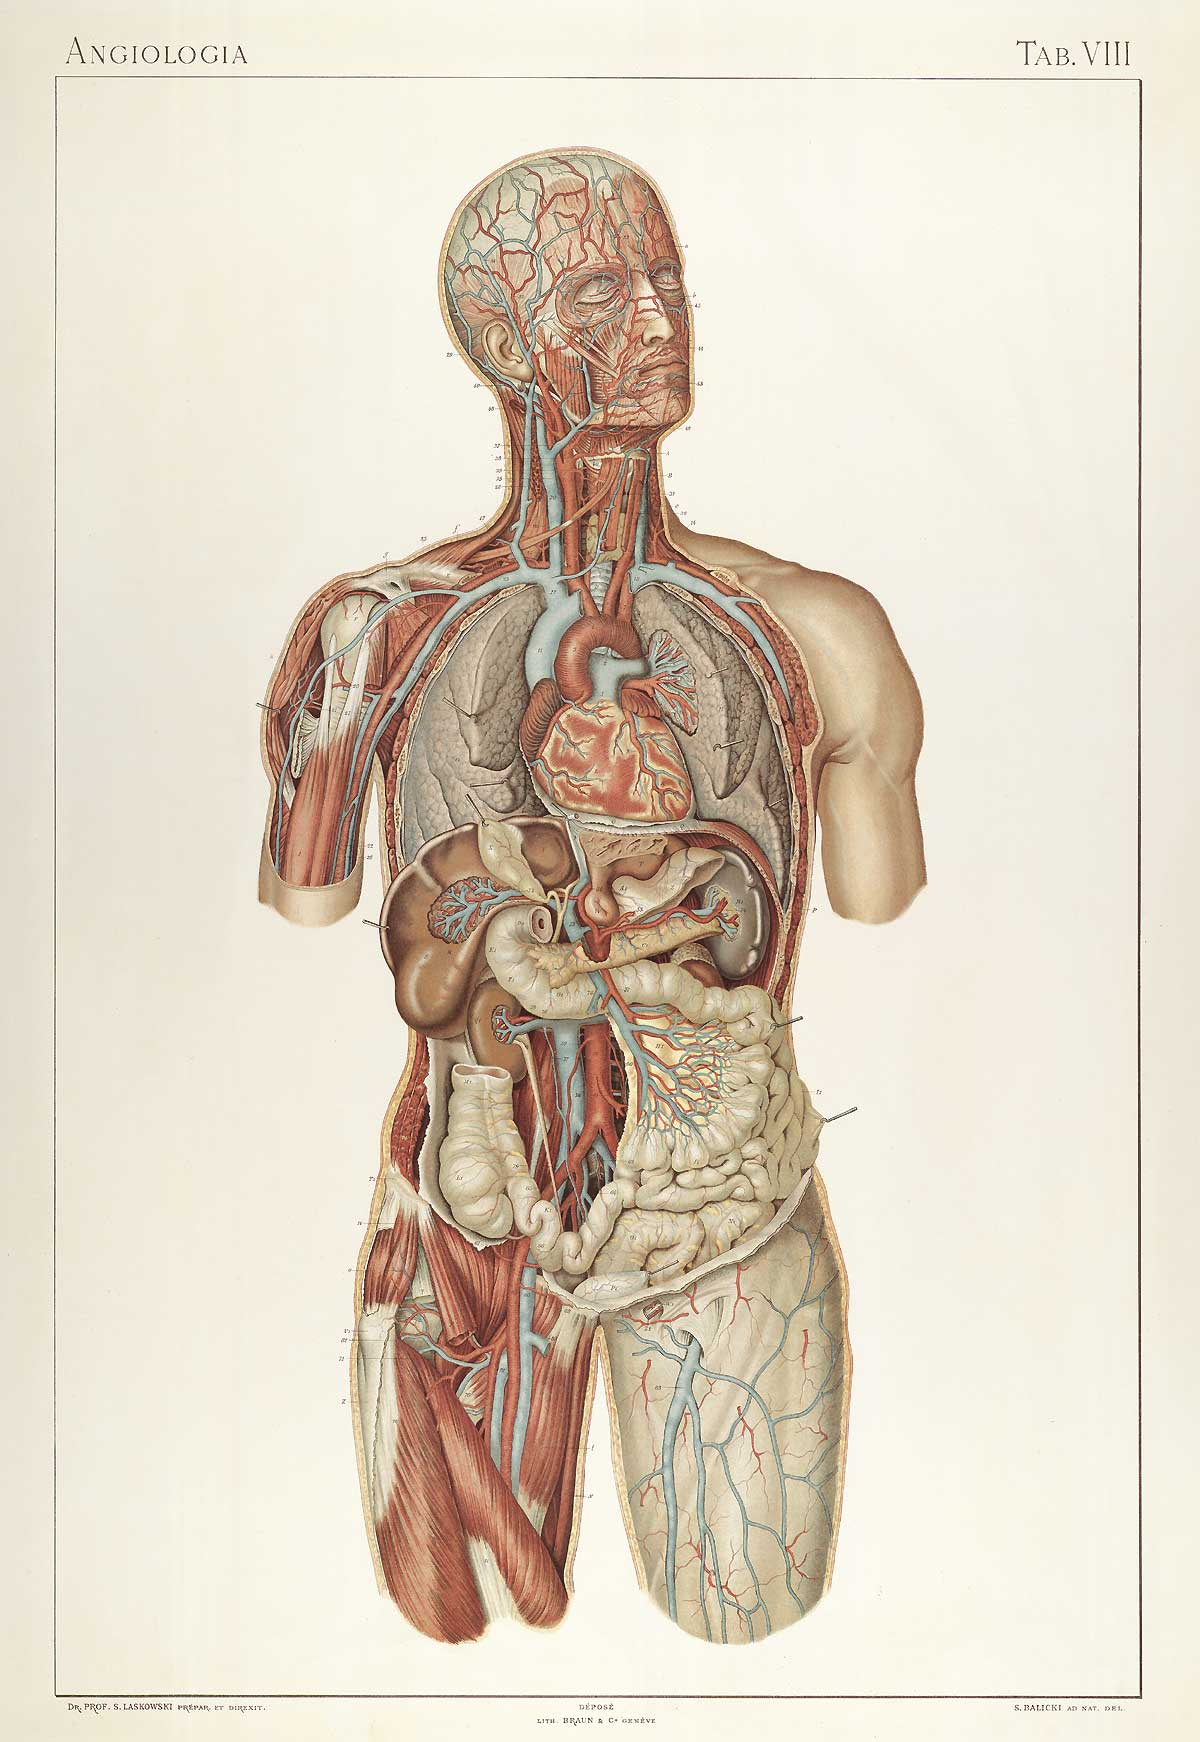 anatomy essays Charles bell was a prolific author who combined his anatomical knowledge with his artistic eye to produce a number of highly detailed and beautifully illustrated books.